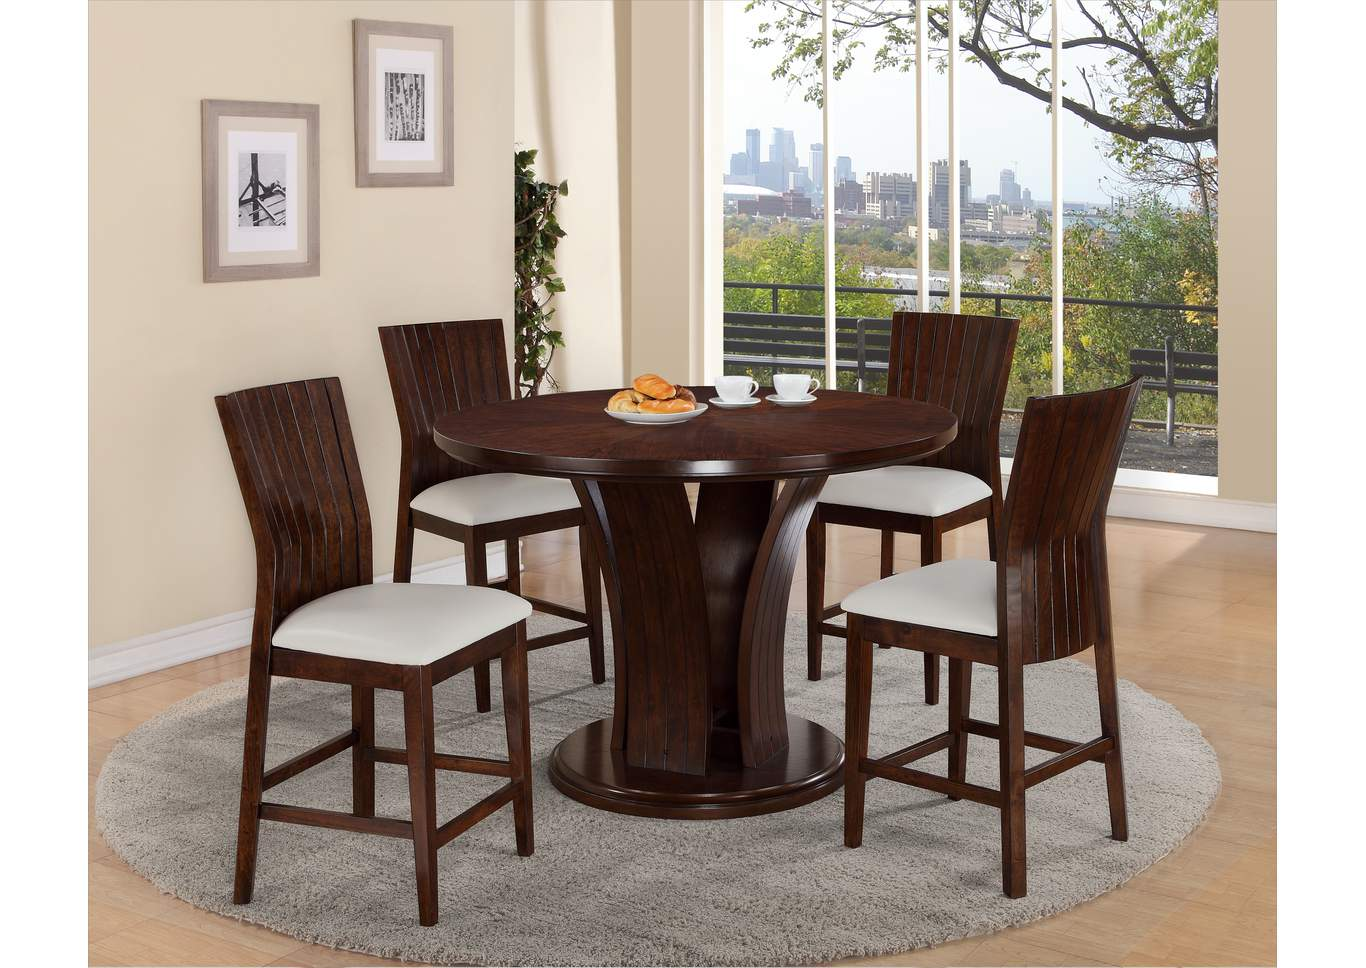 Daria White Counter Height Round Dining Room Table w/4 Counter Height Chairs,Crown Mark